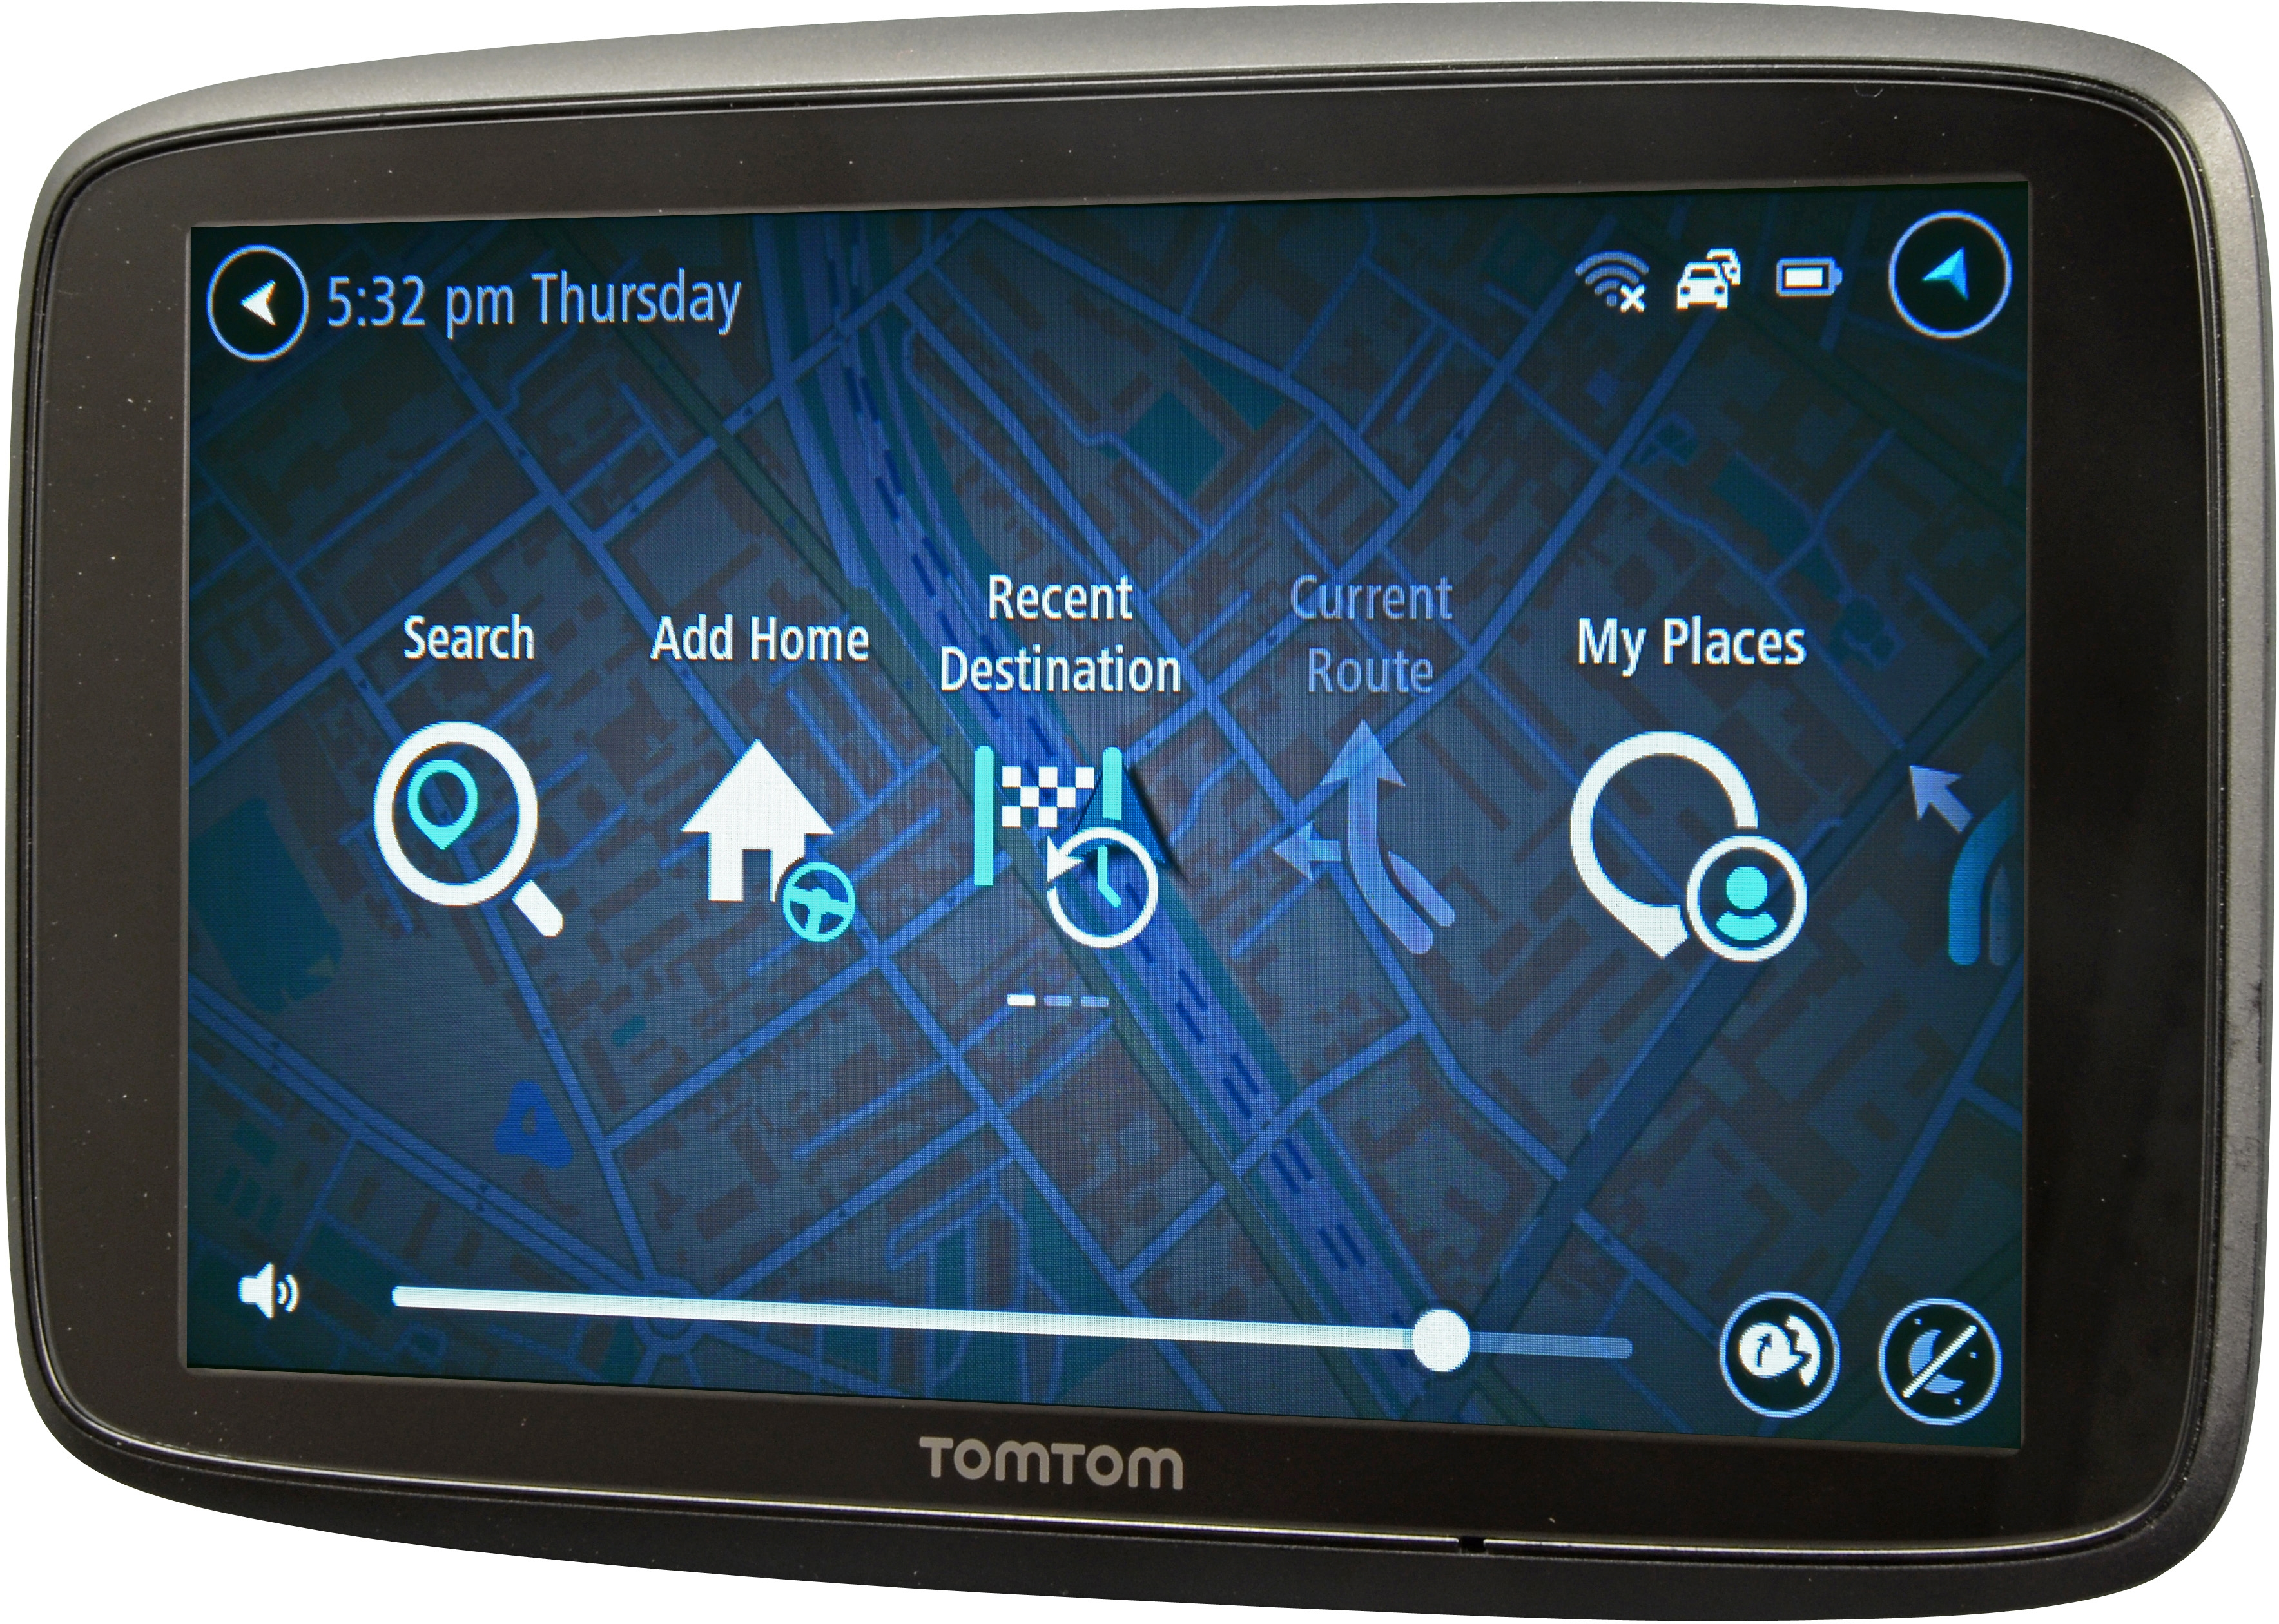 tomtom go professional 6200 test prijzen en specificaties. Black Bedroom Furniture Sets. Home Design Ideas